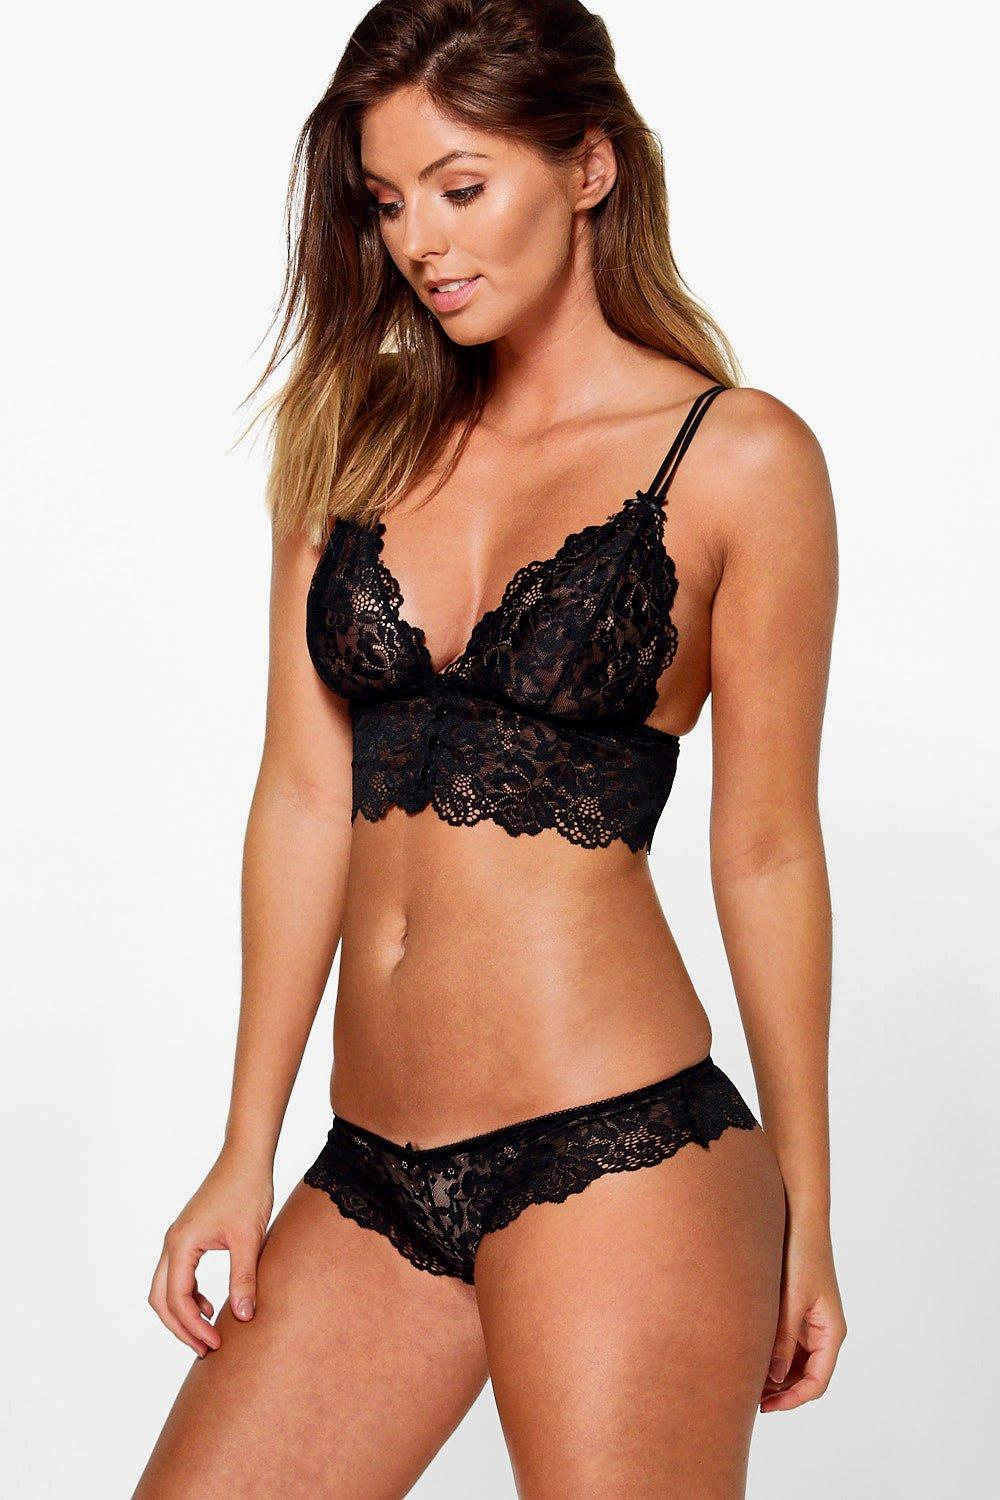 Sophia Black Pretty Lace French Knicker